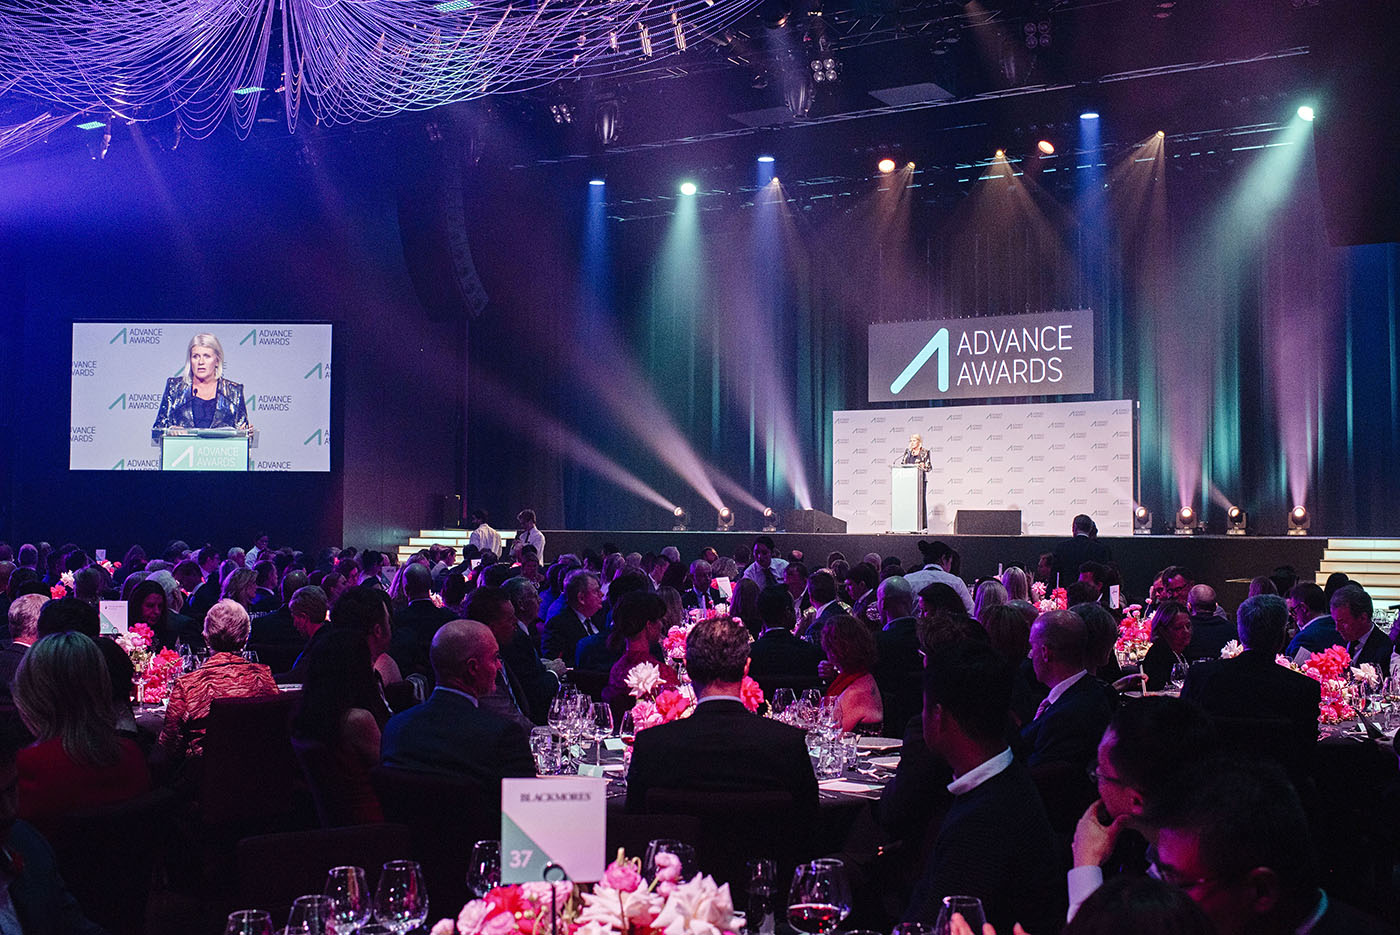 Highlights from the 2019 Advance Awards Ceremony and Gala Dinner